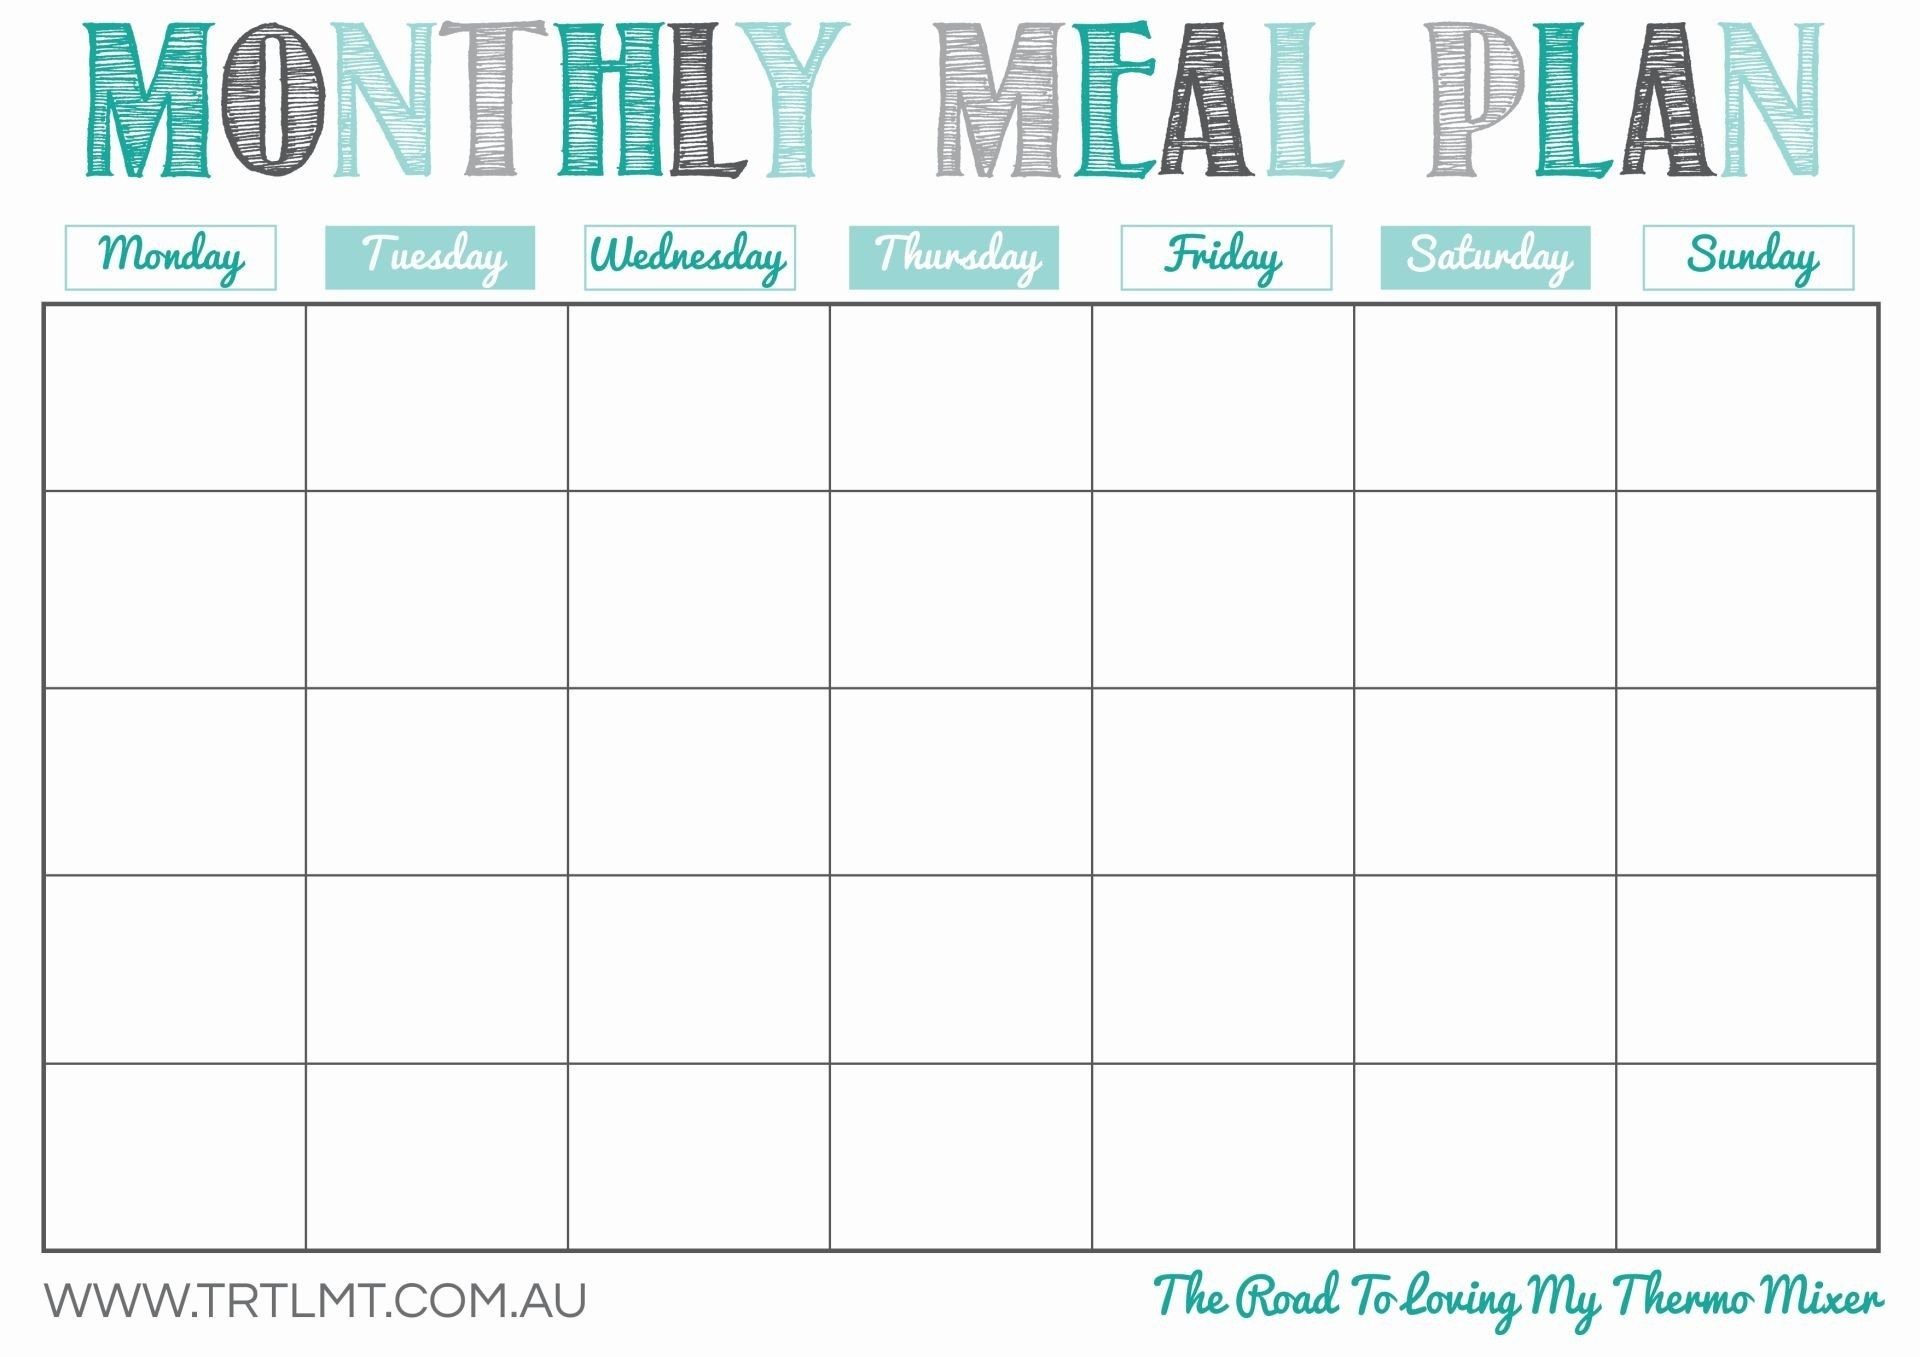 Monthly Meal Plan Template Printable Undated So You Can Use It